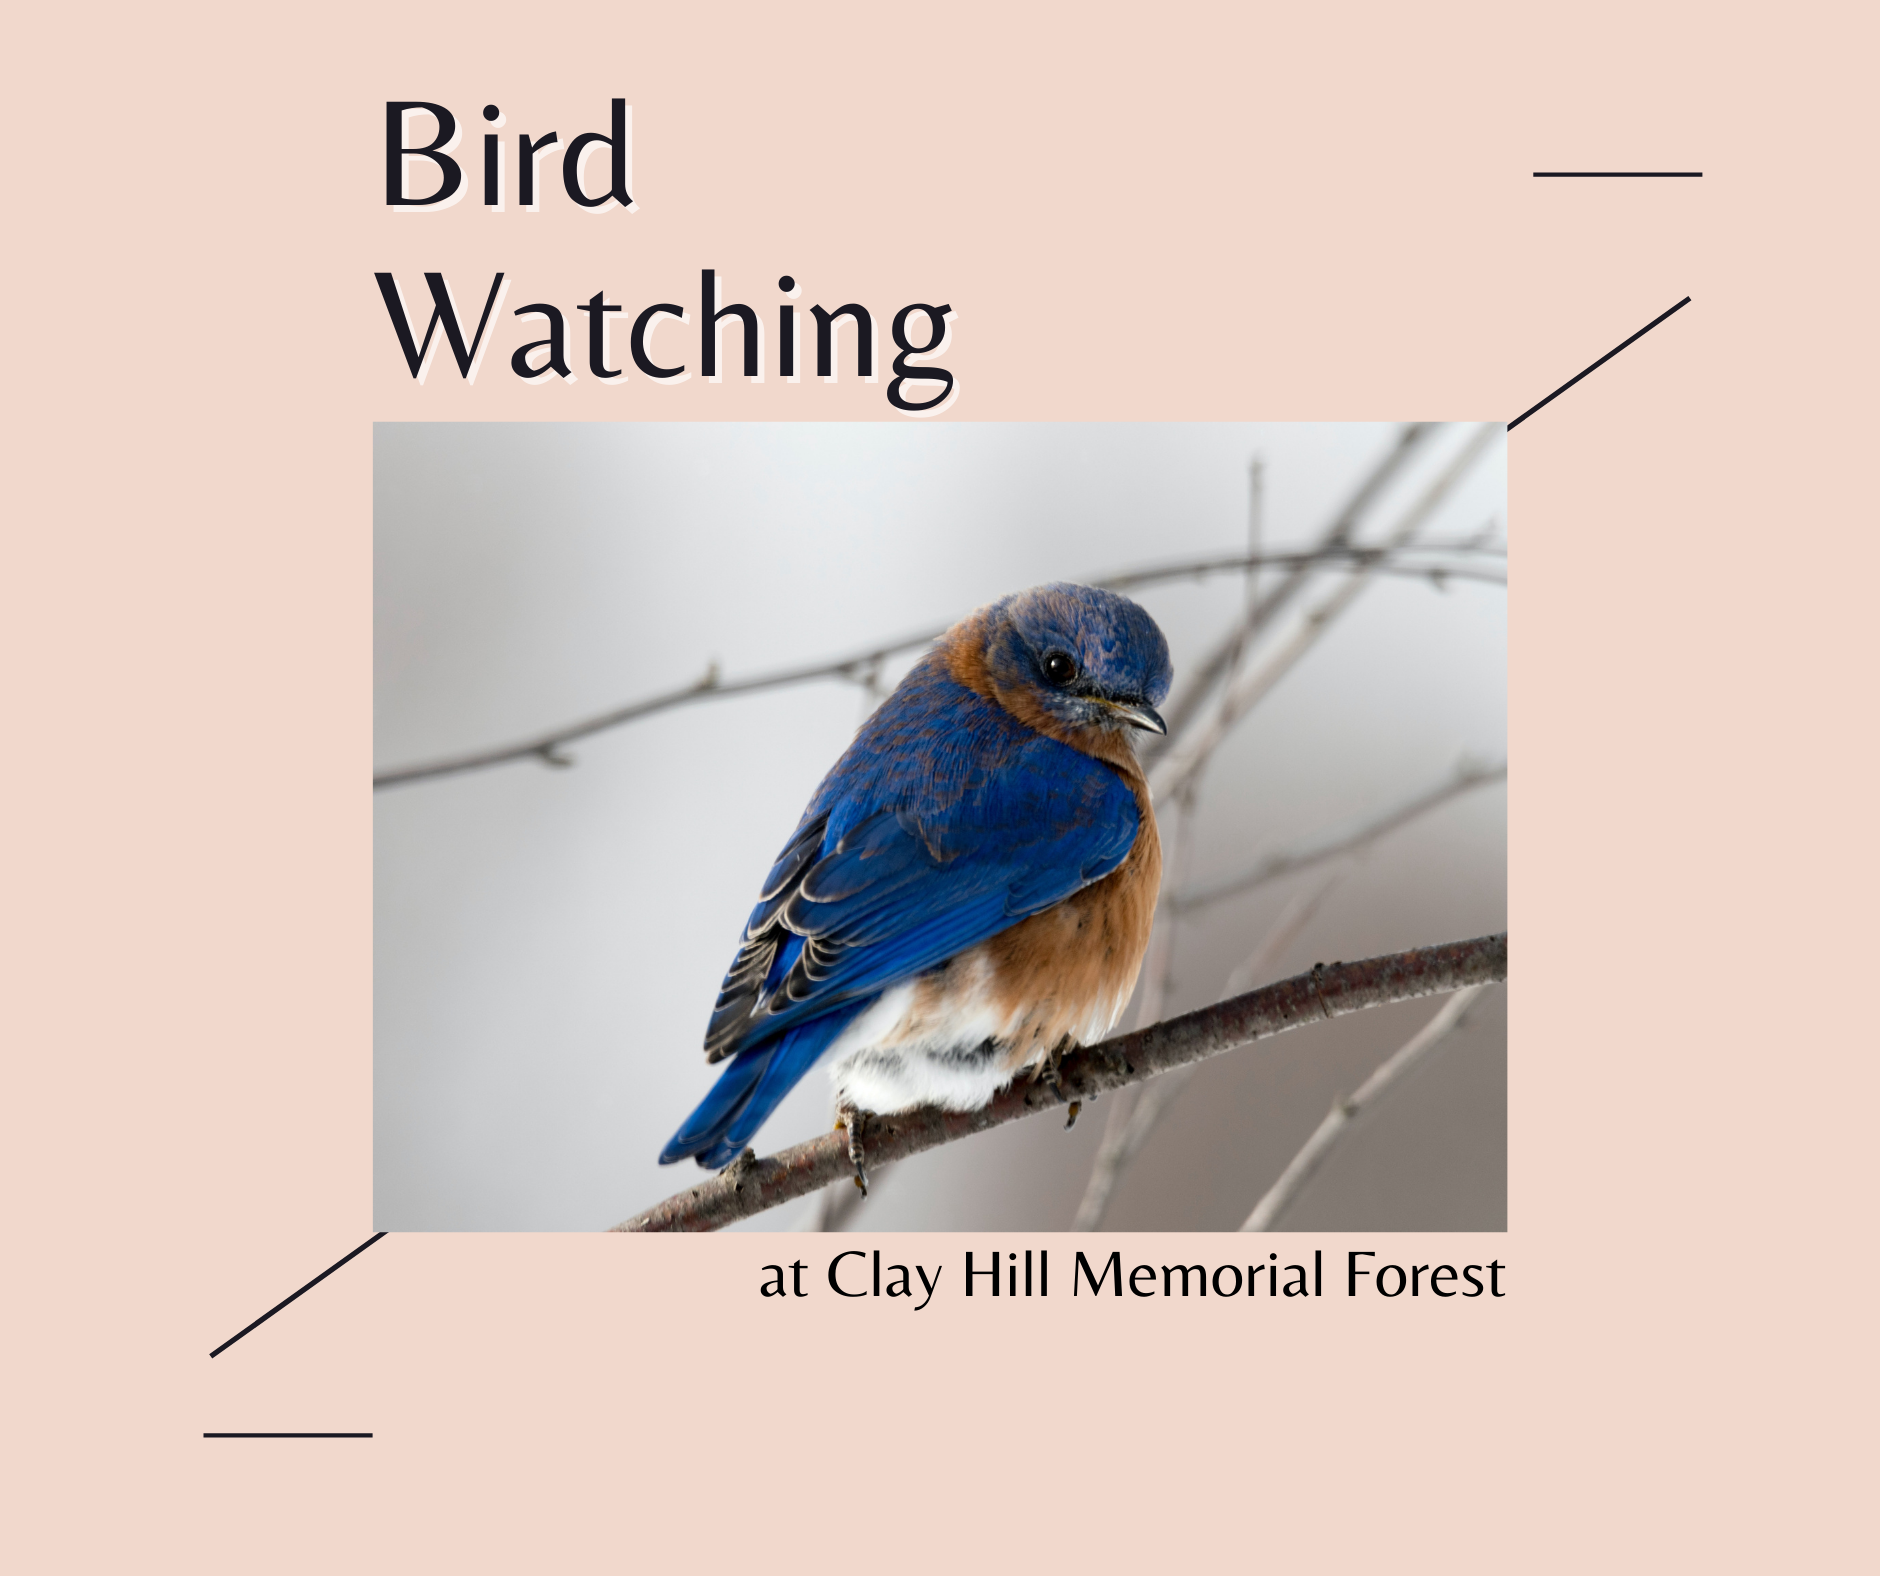 Bird Watching at Clay Hill Memorial Forest